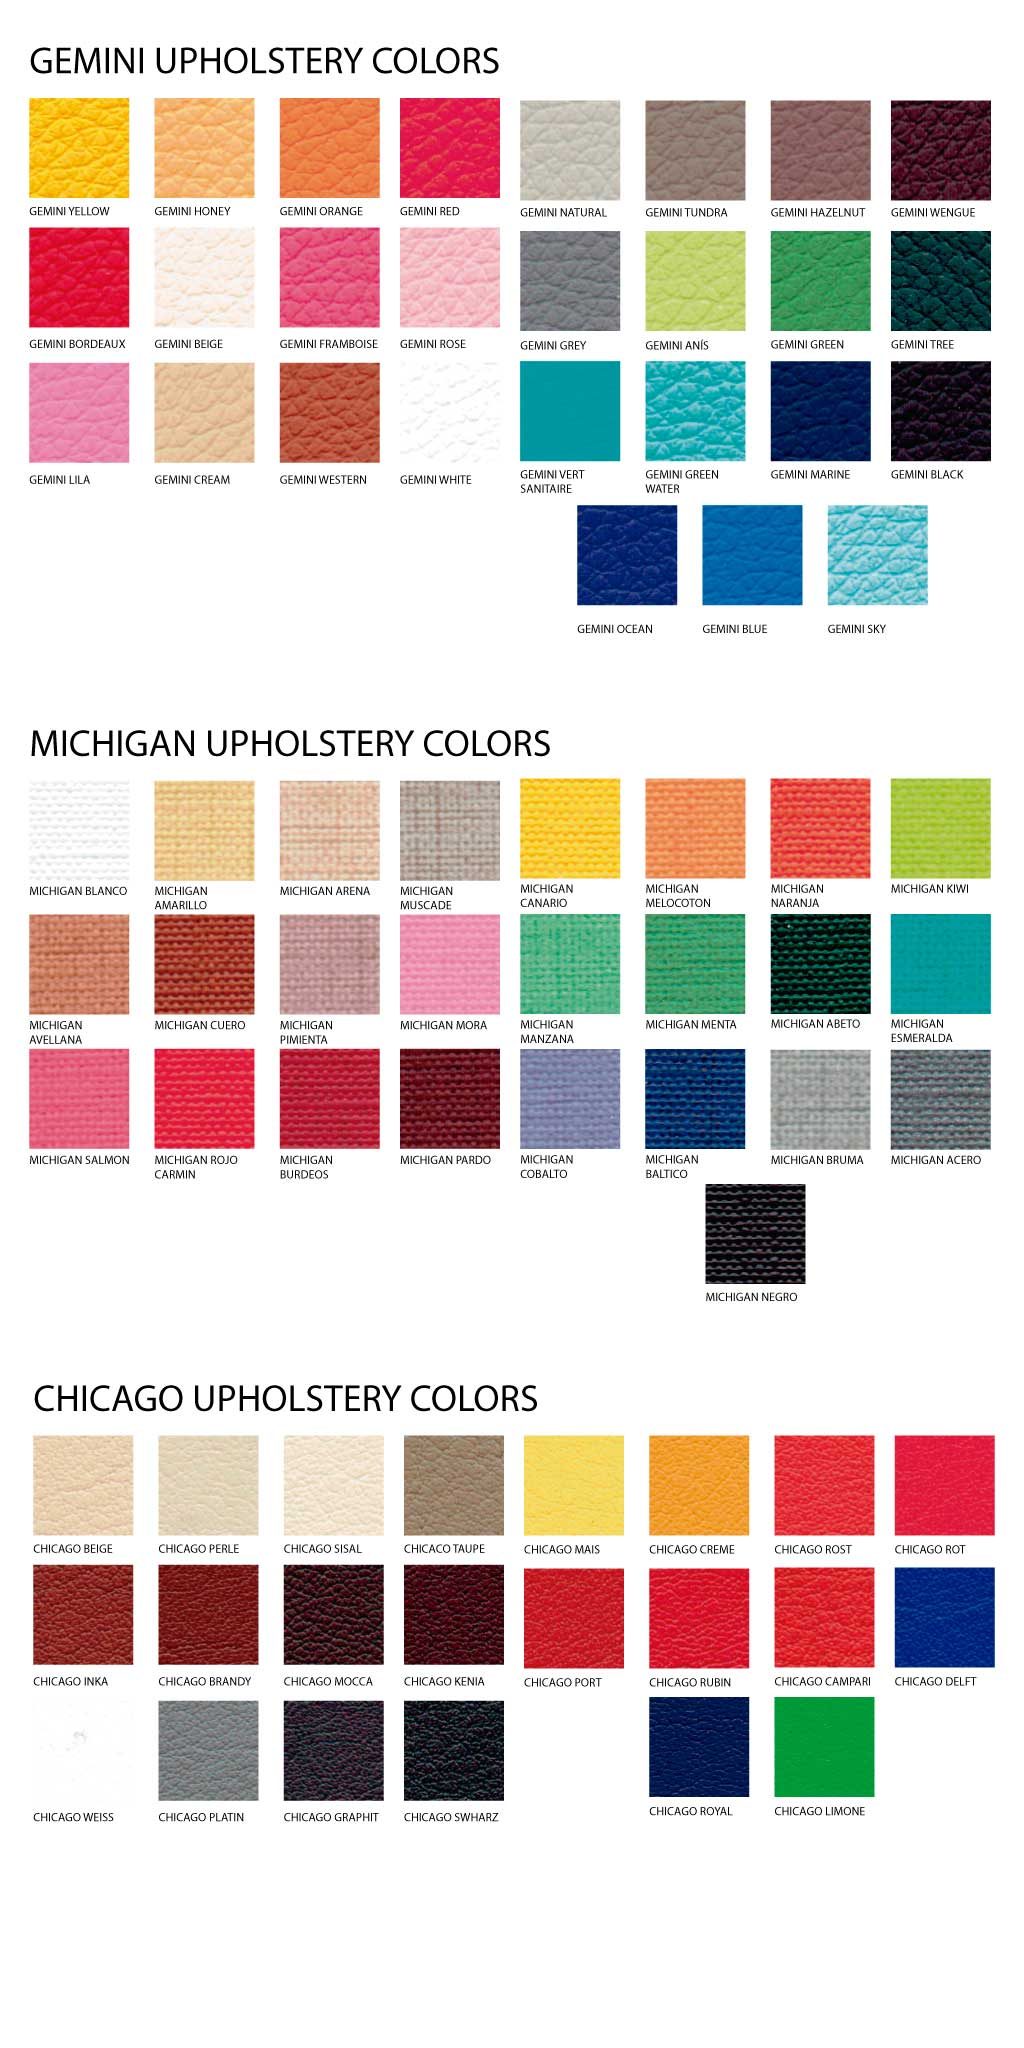 Upholstery Colors | ARREGON® Original Pilates Equipment